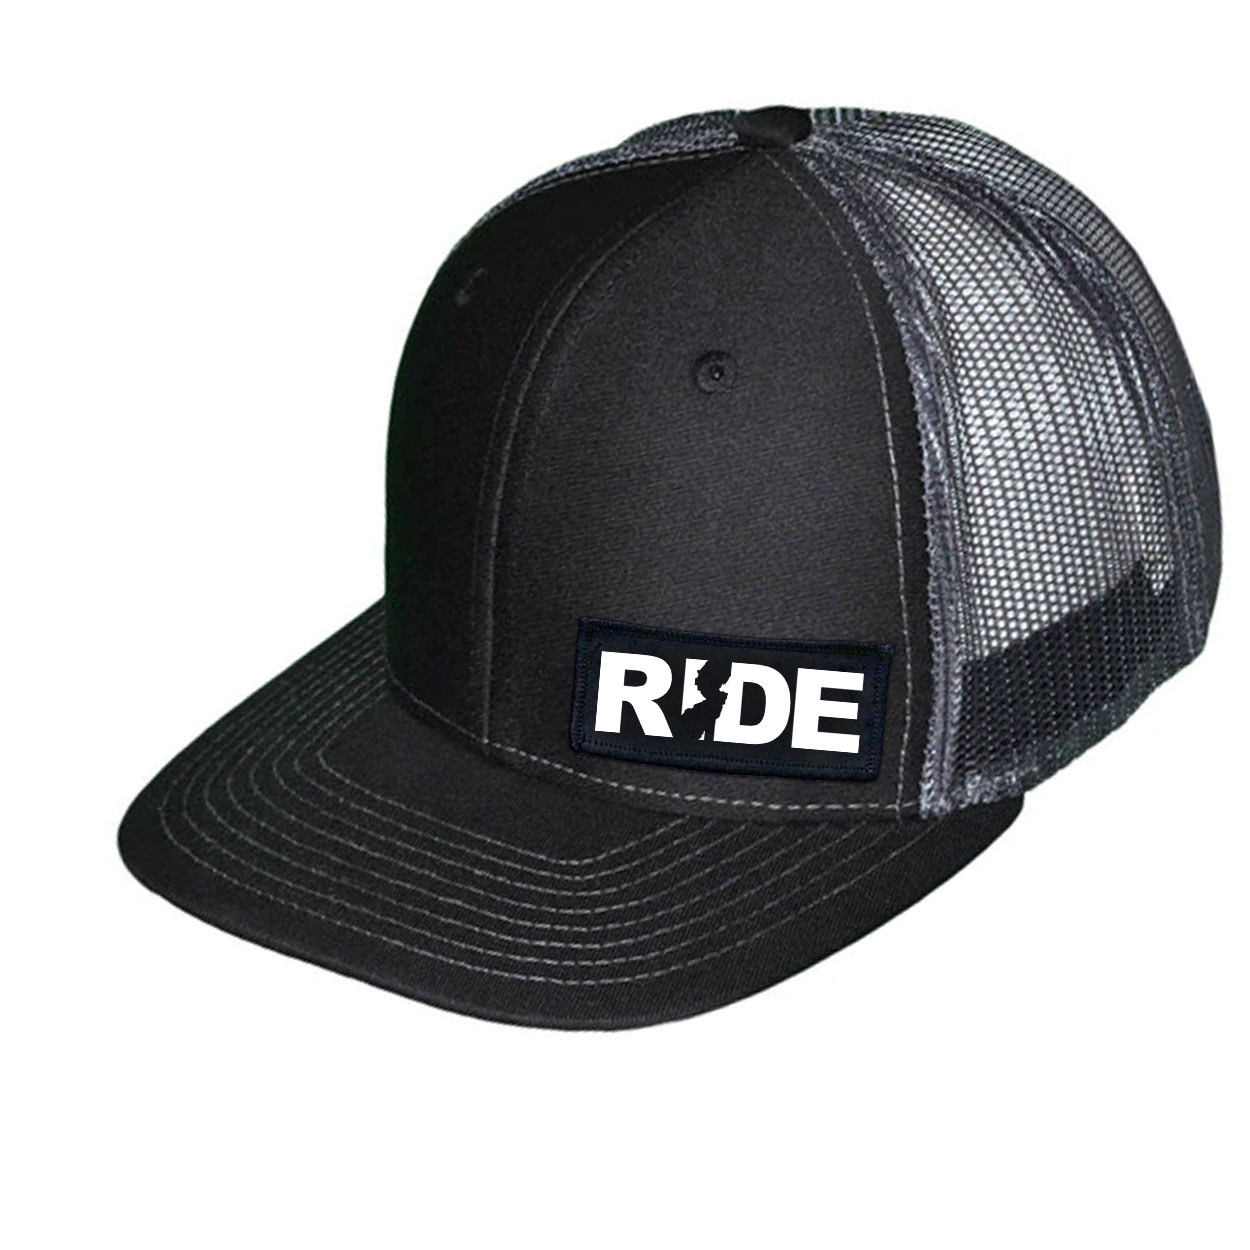 Ride New Jersey Night Out Woven Patch Snapback Trucker Hat Black/Dark Gray (White Logo)